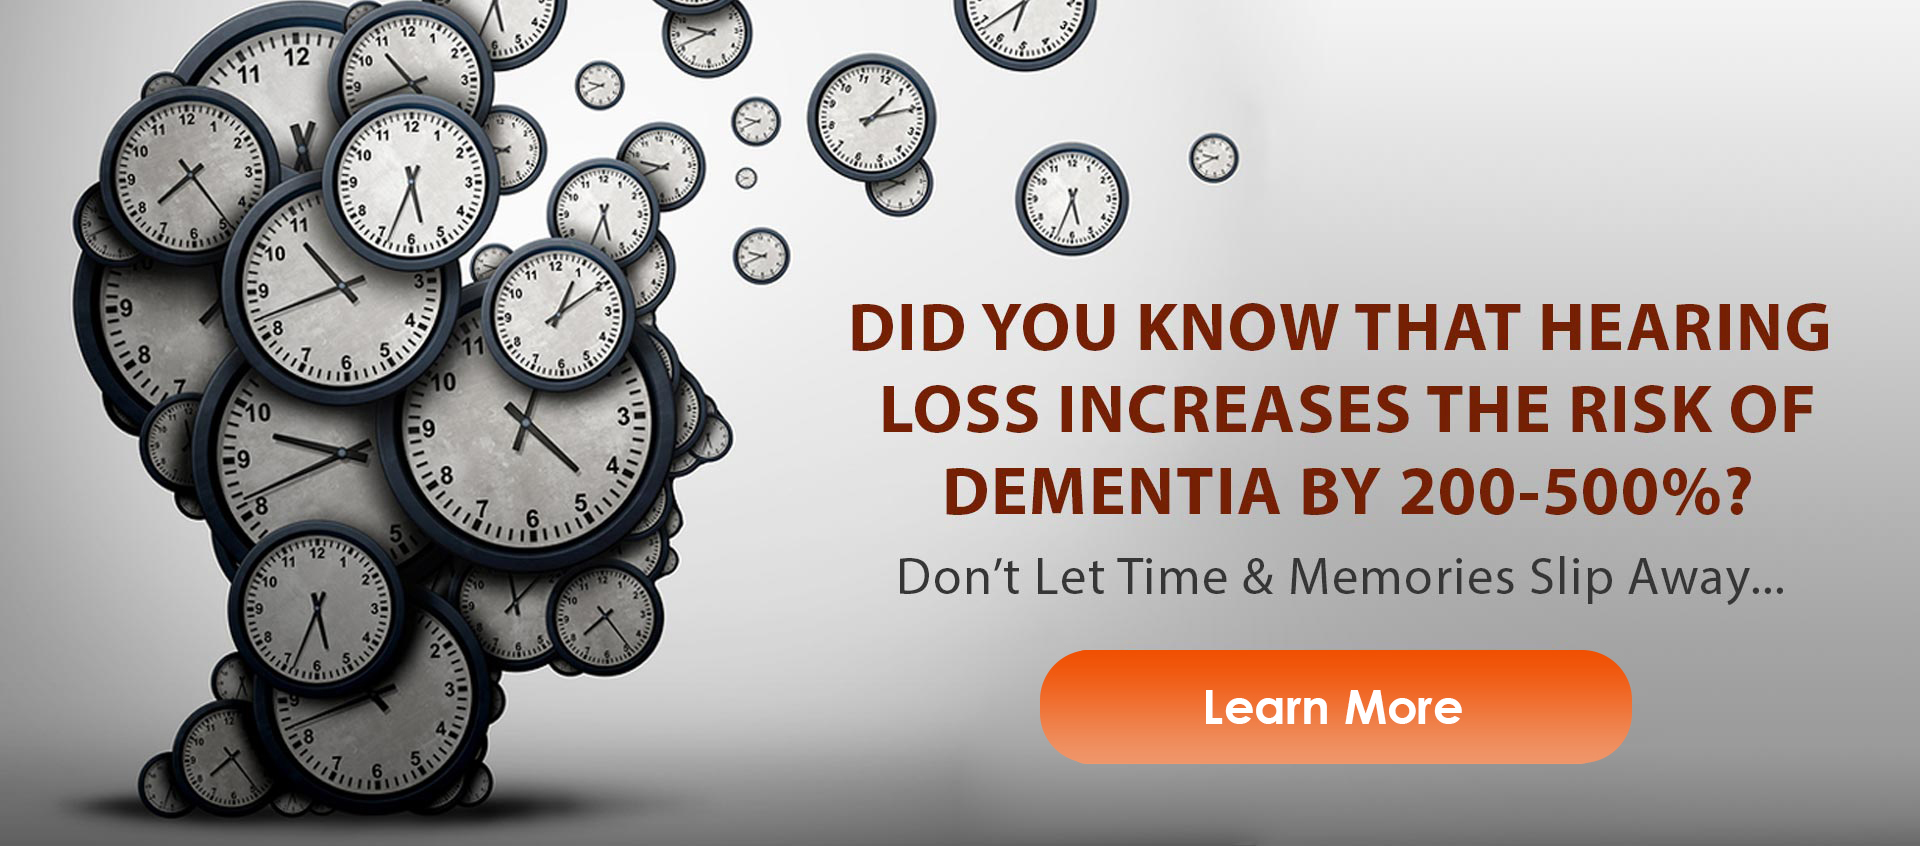 hearing loss increases dementia